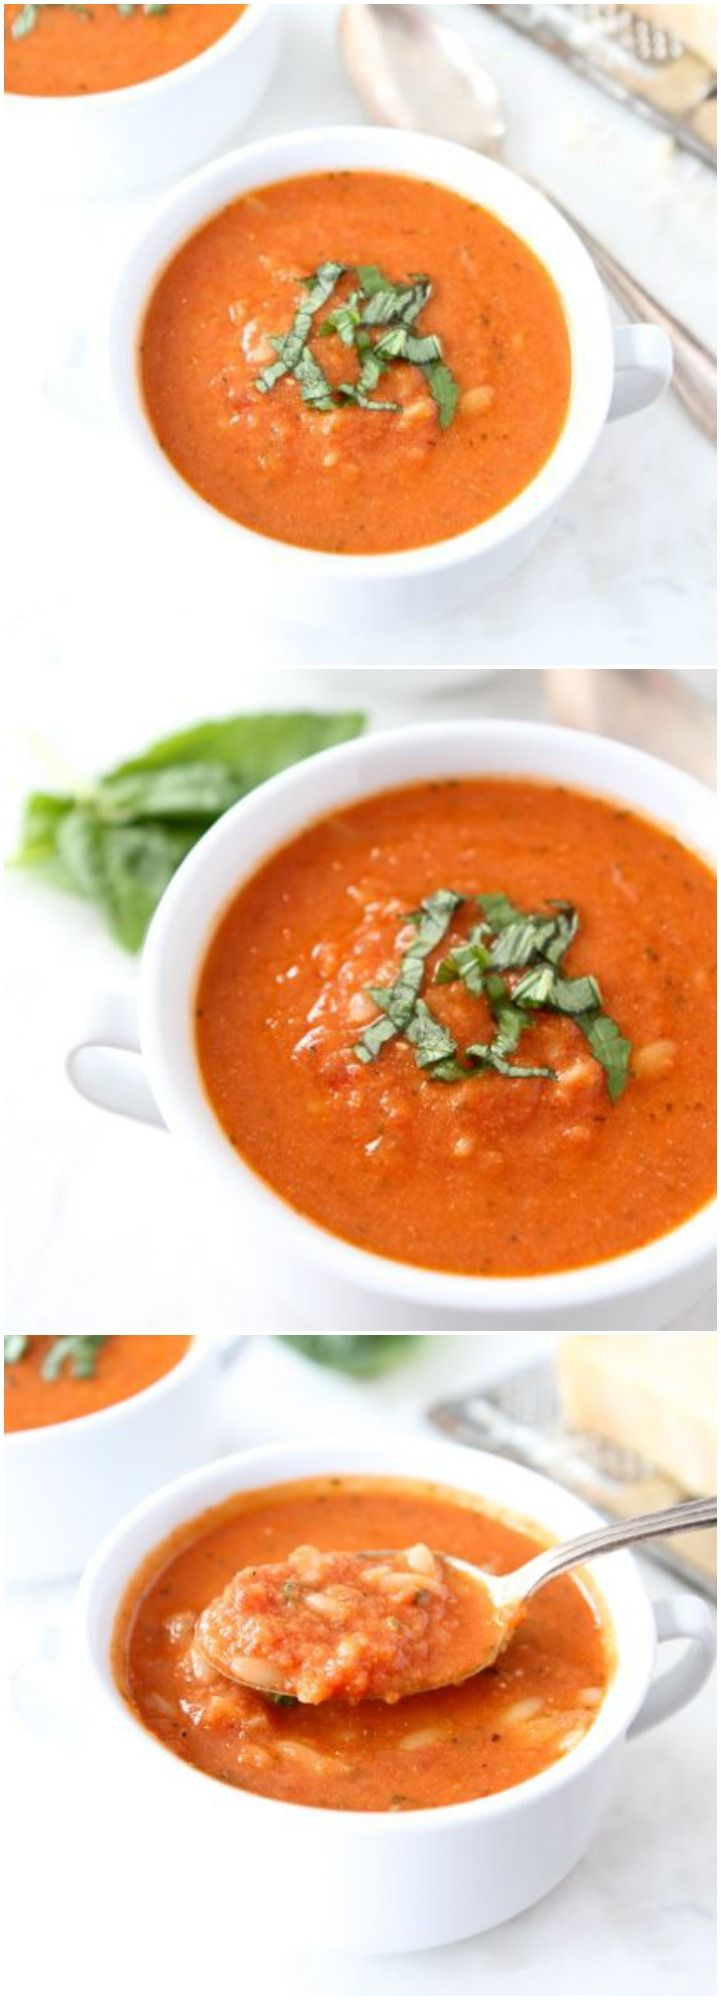 Creamy Tomato Orzo Soup Recipe on twopeasandtheirpod.com Love this creamy tomato soup that is made with Greek yogurt! #soup